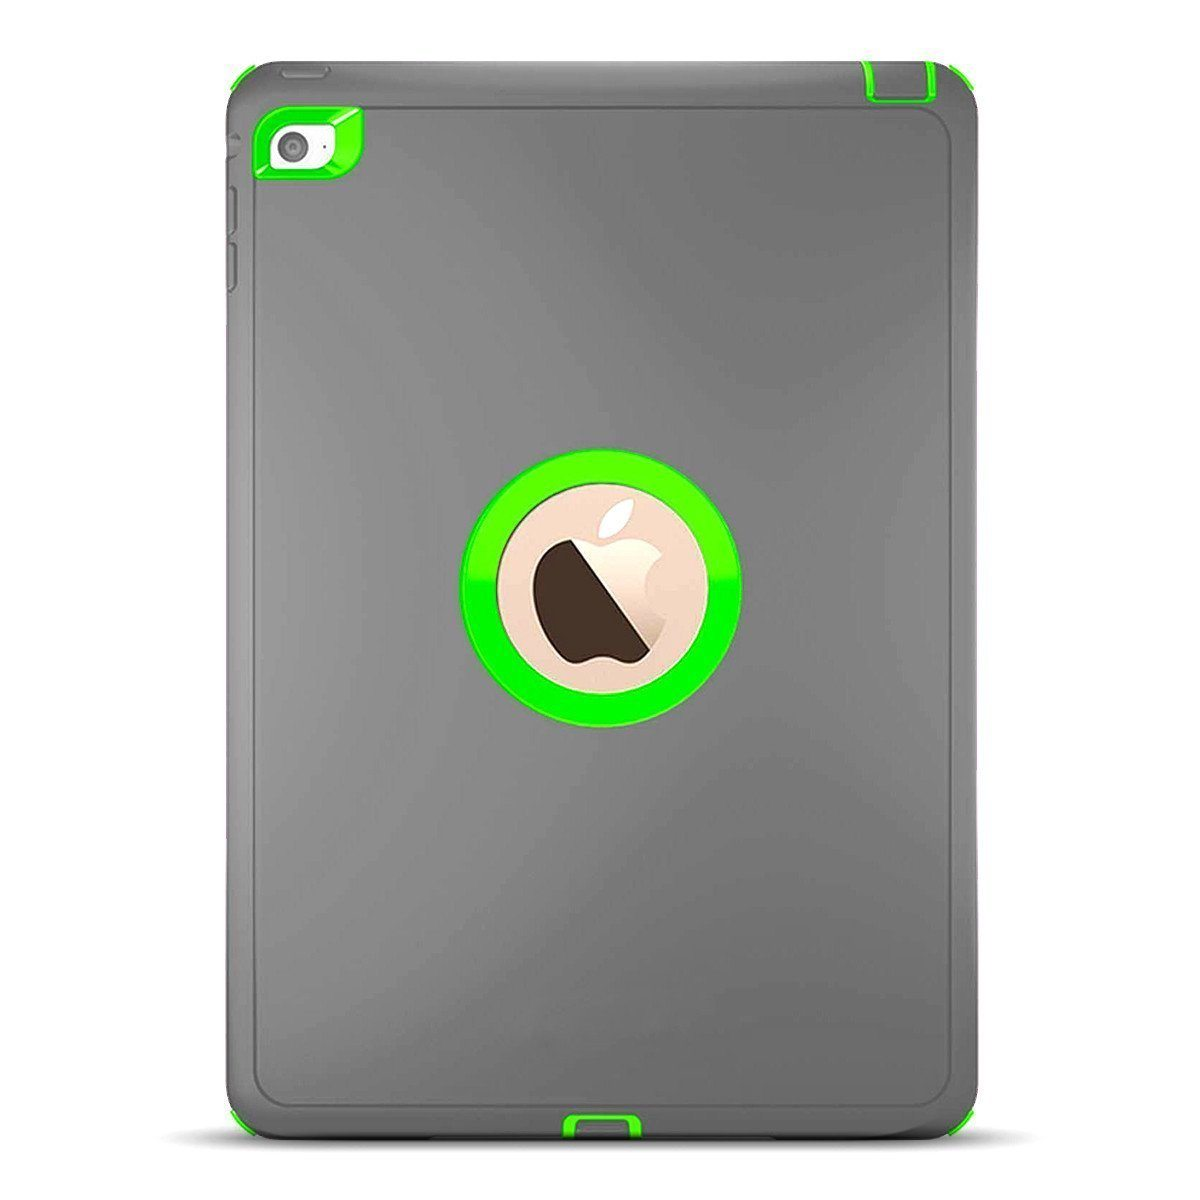 DualPro Protector for iPad Mini 3 - Grey & Light Green